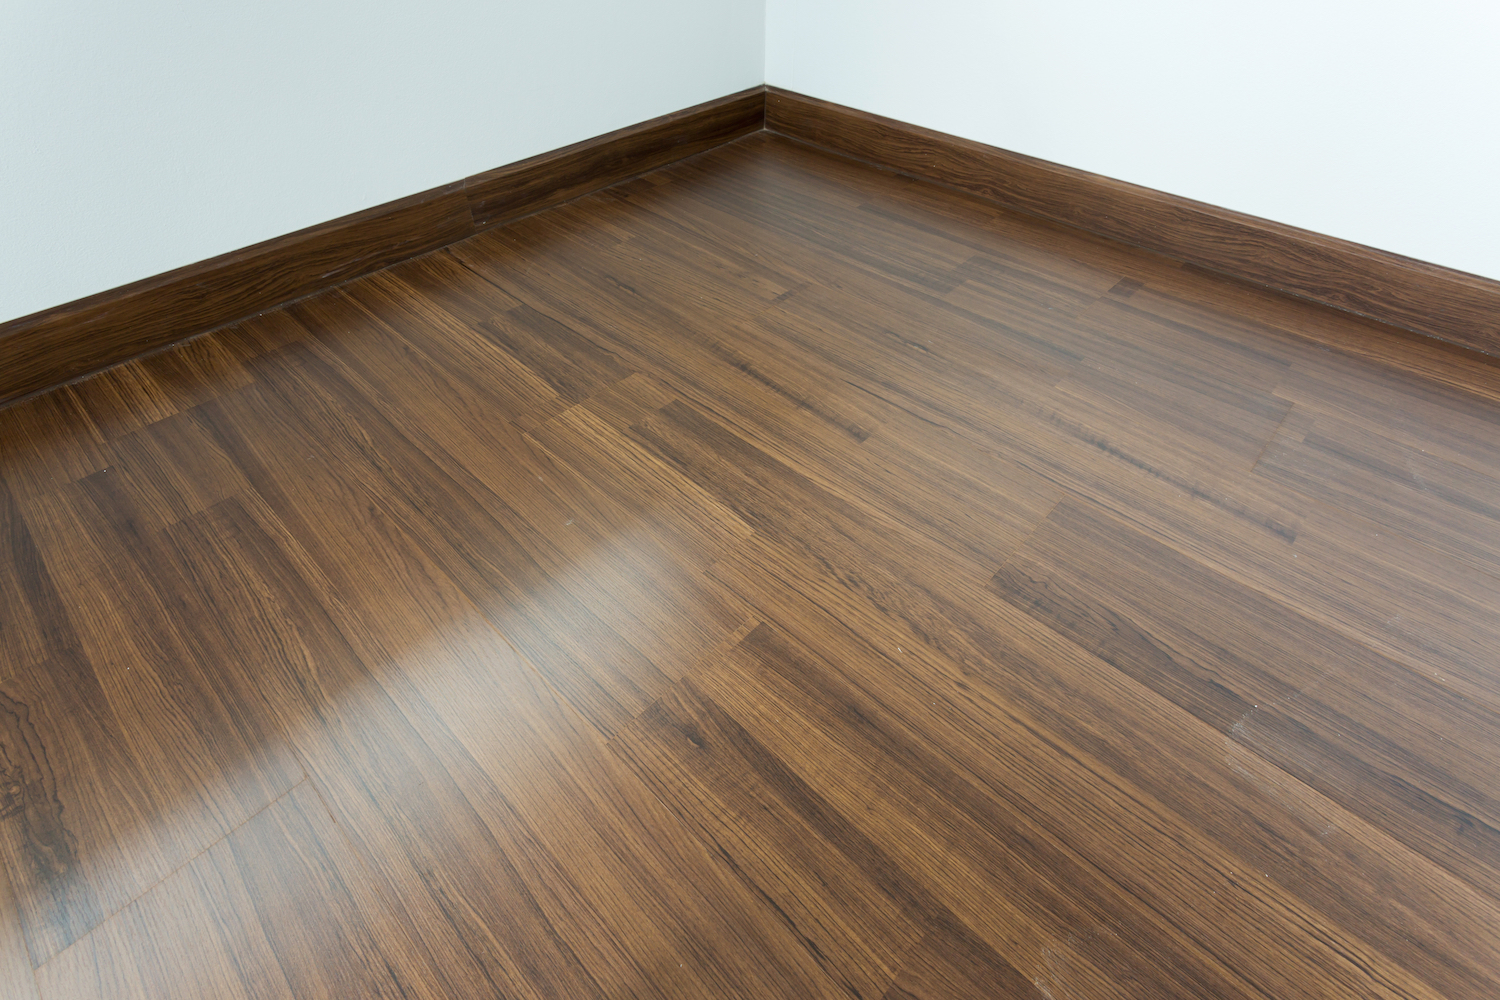 Laminate flooring contractor bromley j henry flooring for Laminate flooring contractors